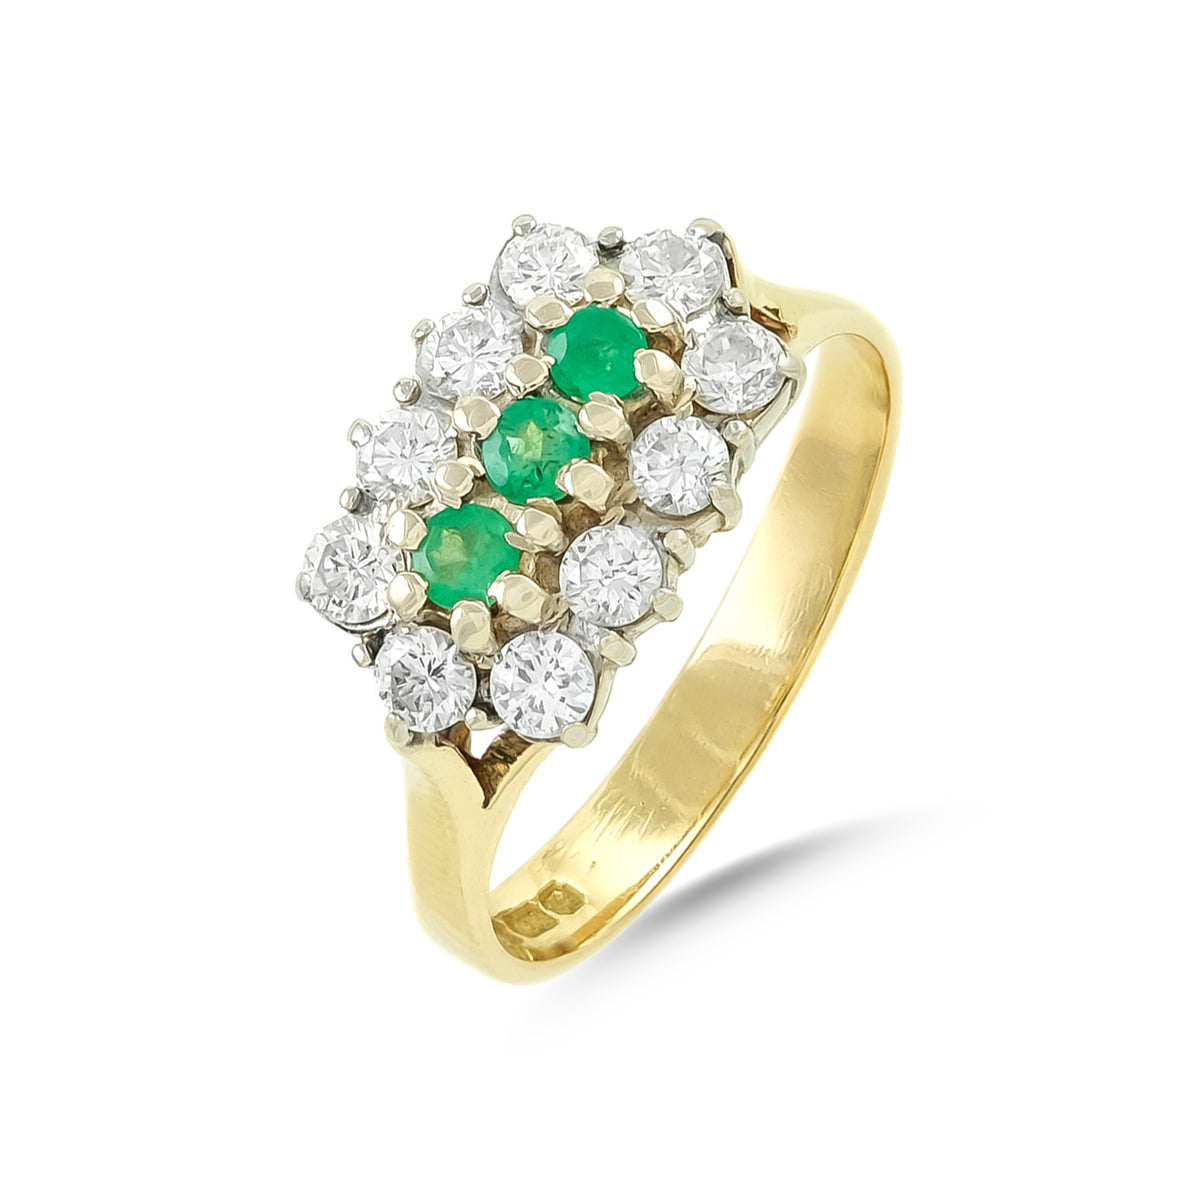 Vintage 18ct Yellow Gold Emerald and Diamond Cluster Ring